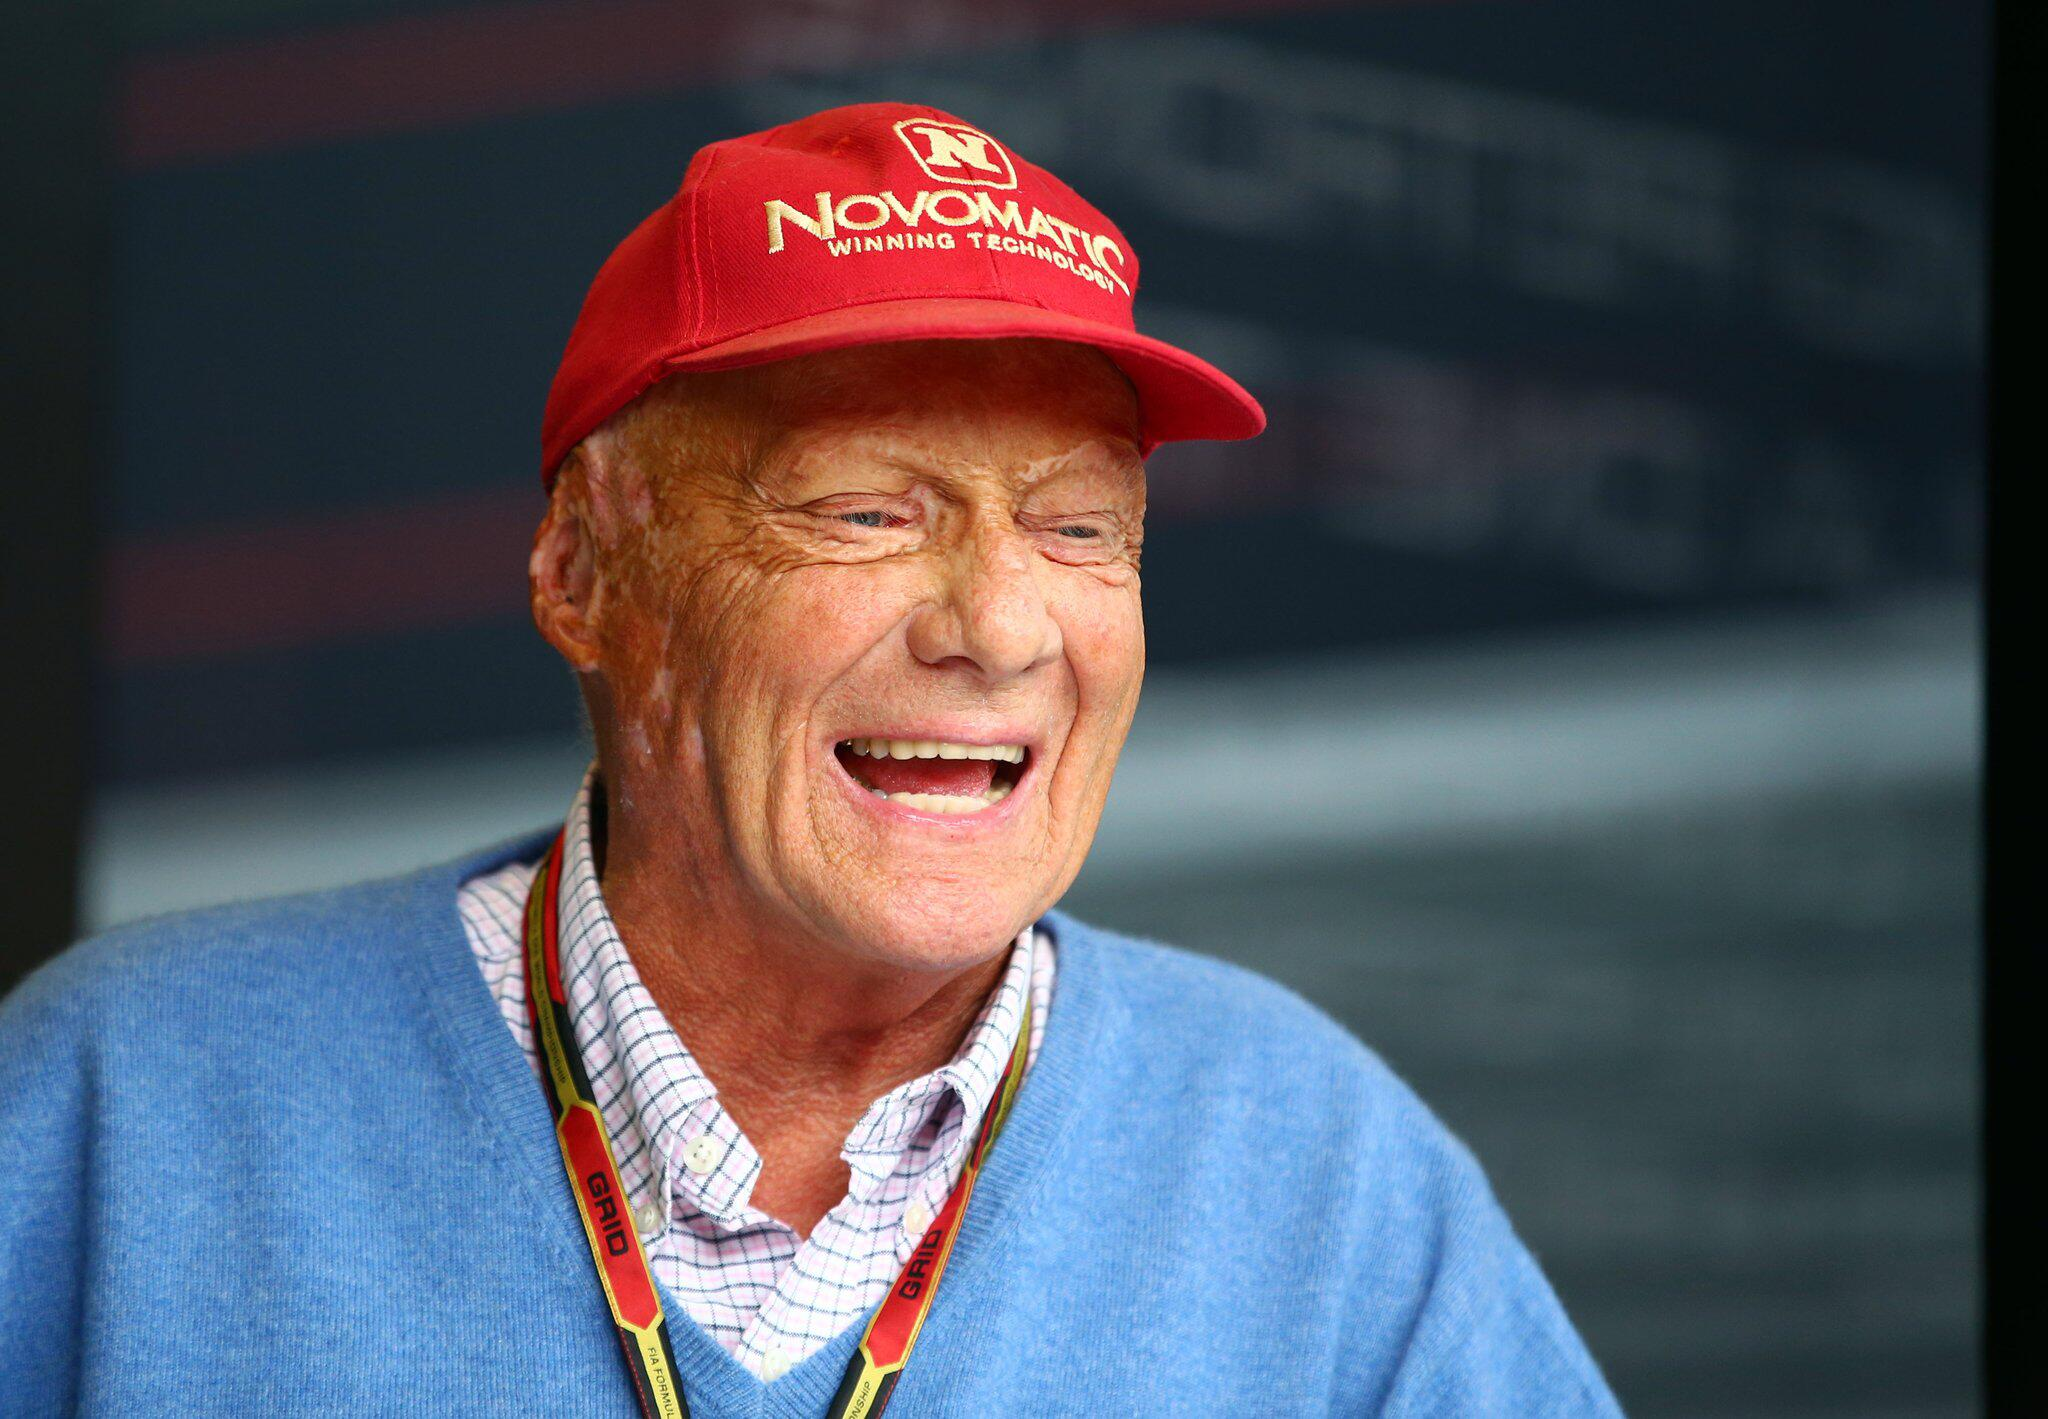 Niki Lauda - Biography, Wife, Children, Age, Height, Weight